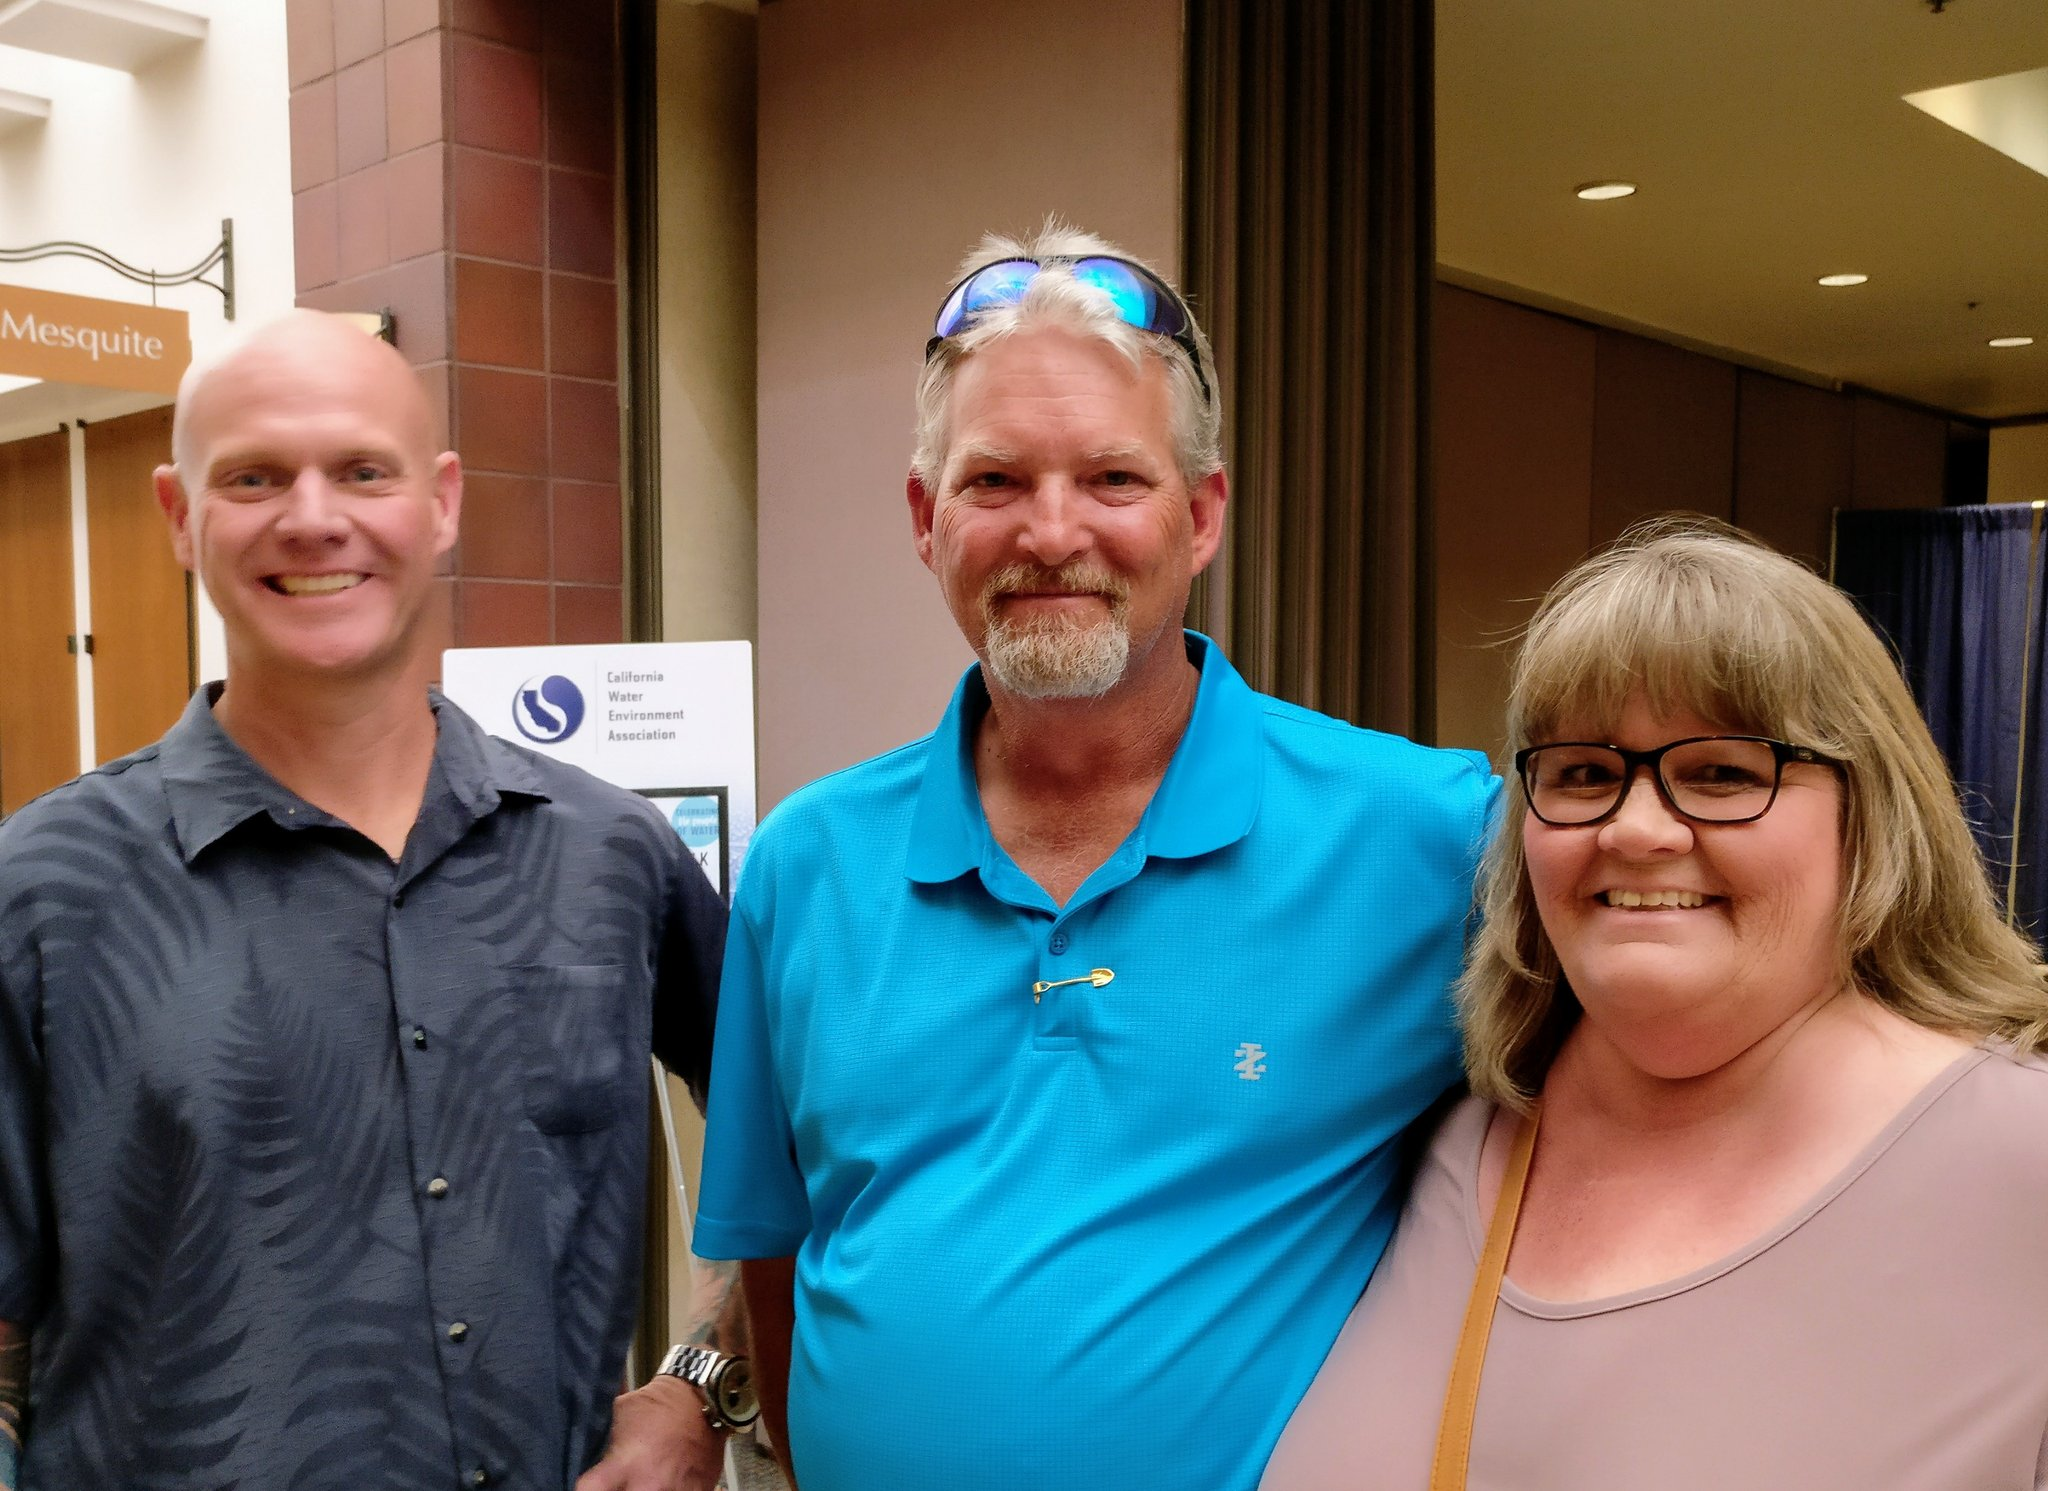 John, Lee & Sheri at #CWEAAC. Sheri's father spent 36 yrs as a wastewater operator & was a founder of the @tristateseminar #Mywaterlegacy https://t.co/H2lhTnVeH8